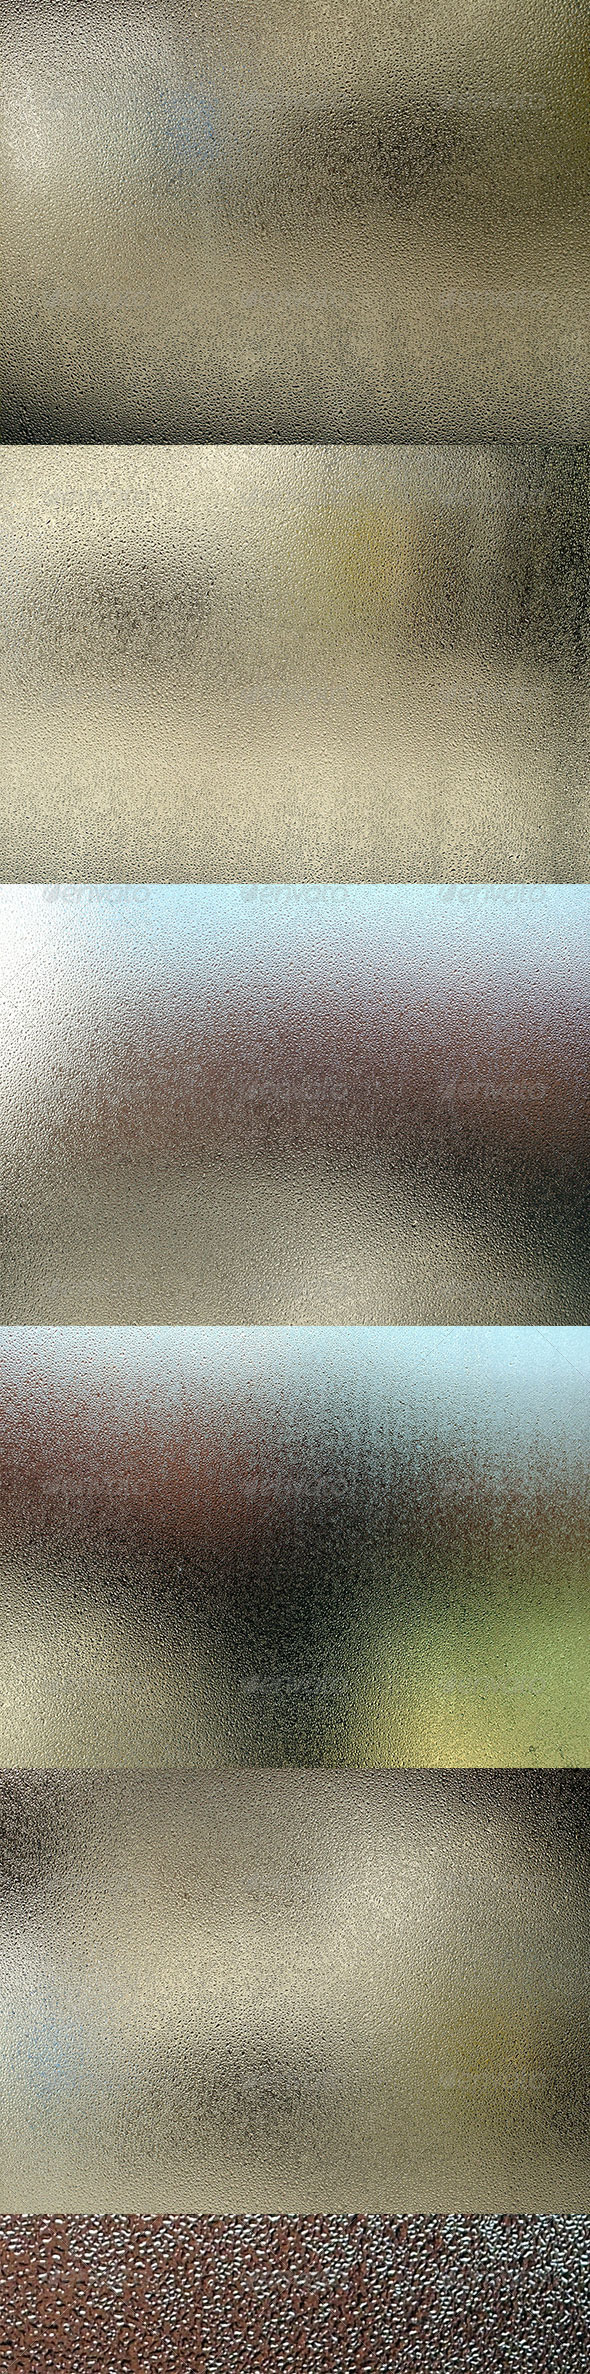 Sauna Wet Windows - Liquid Textures